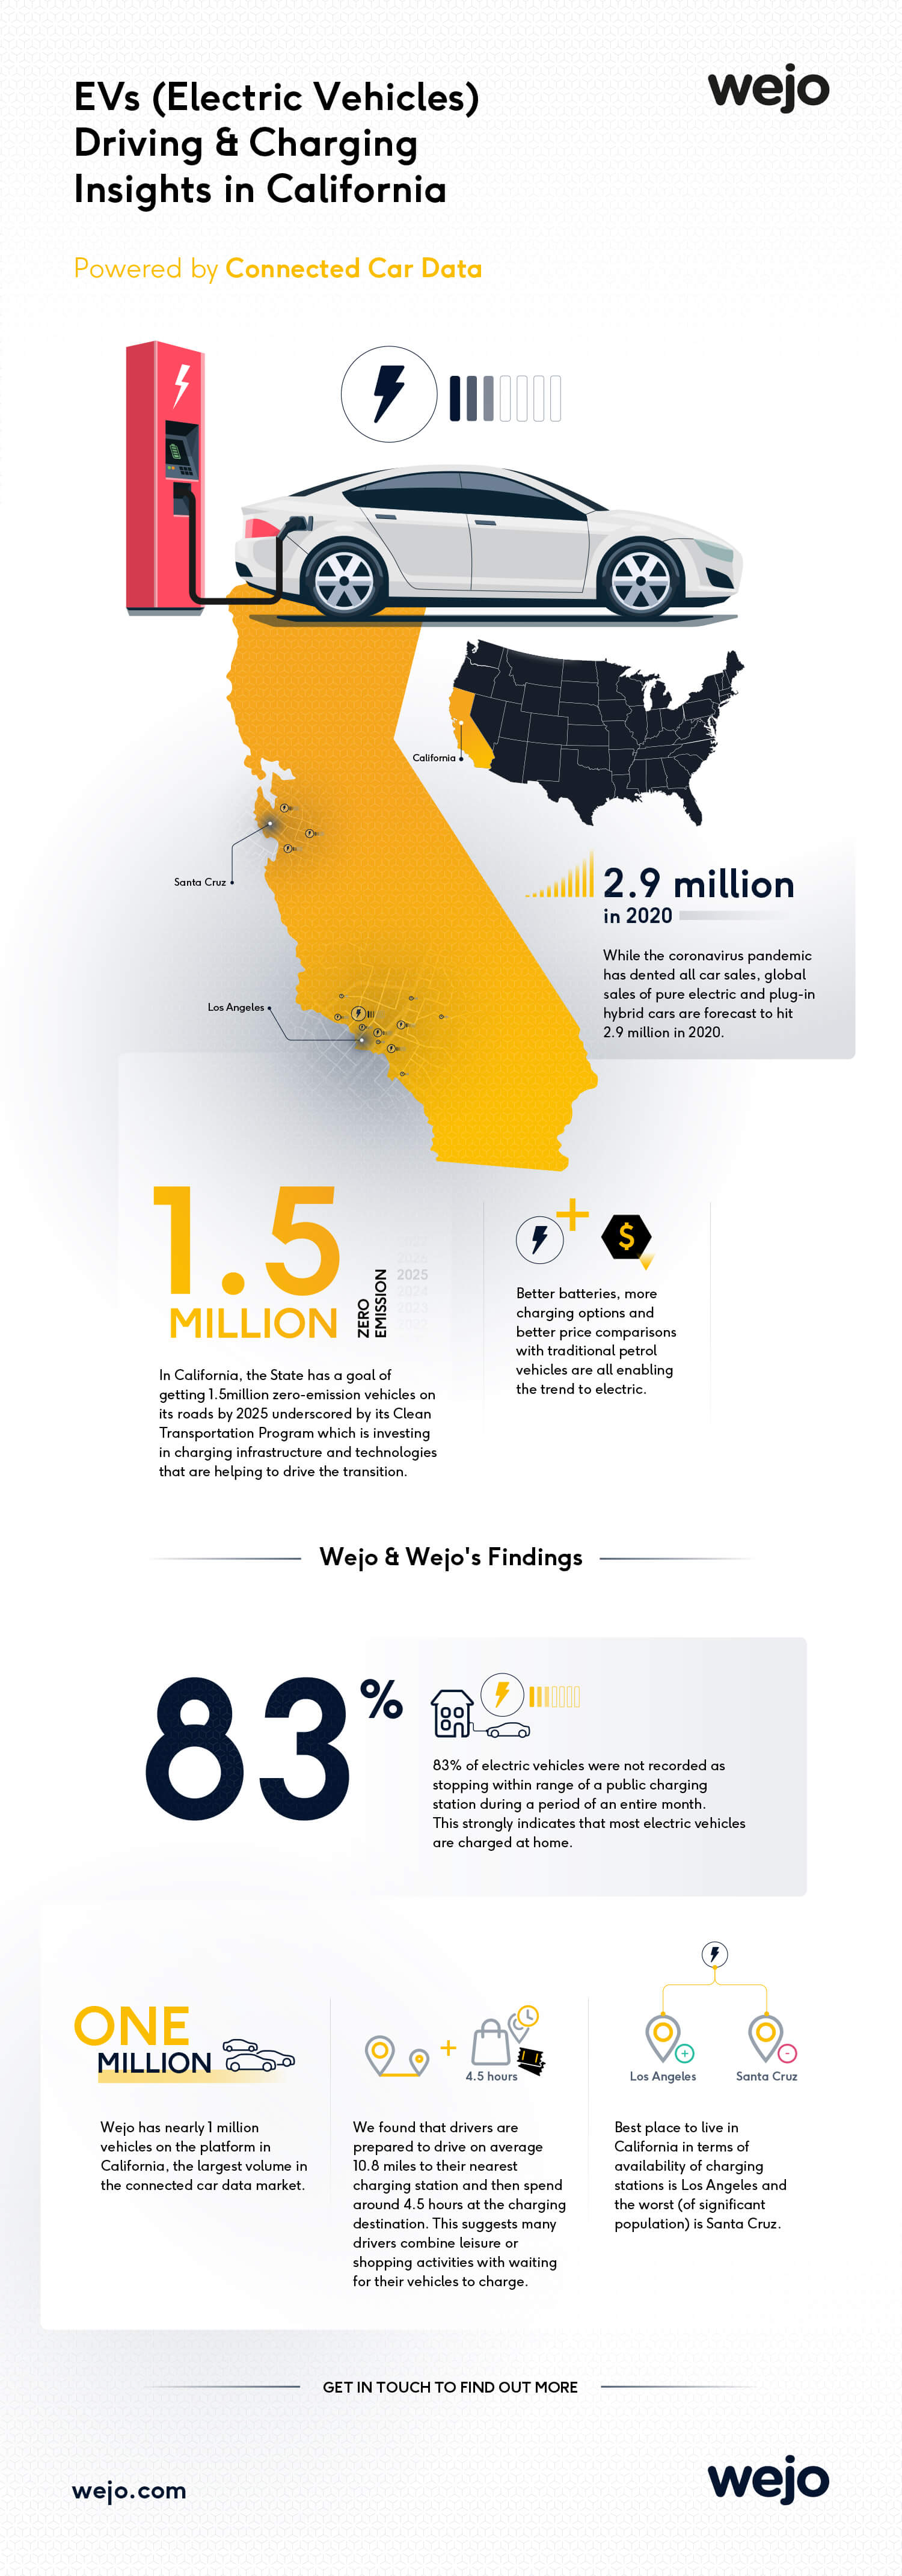 EVs Driving & Charging Insights in California | Wejo